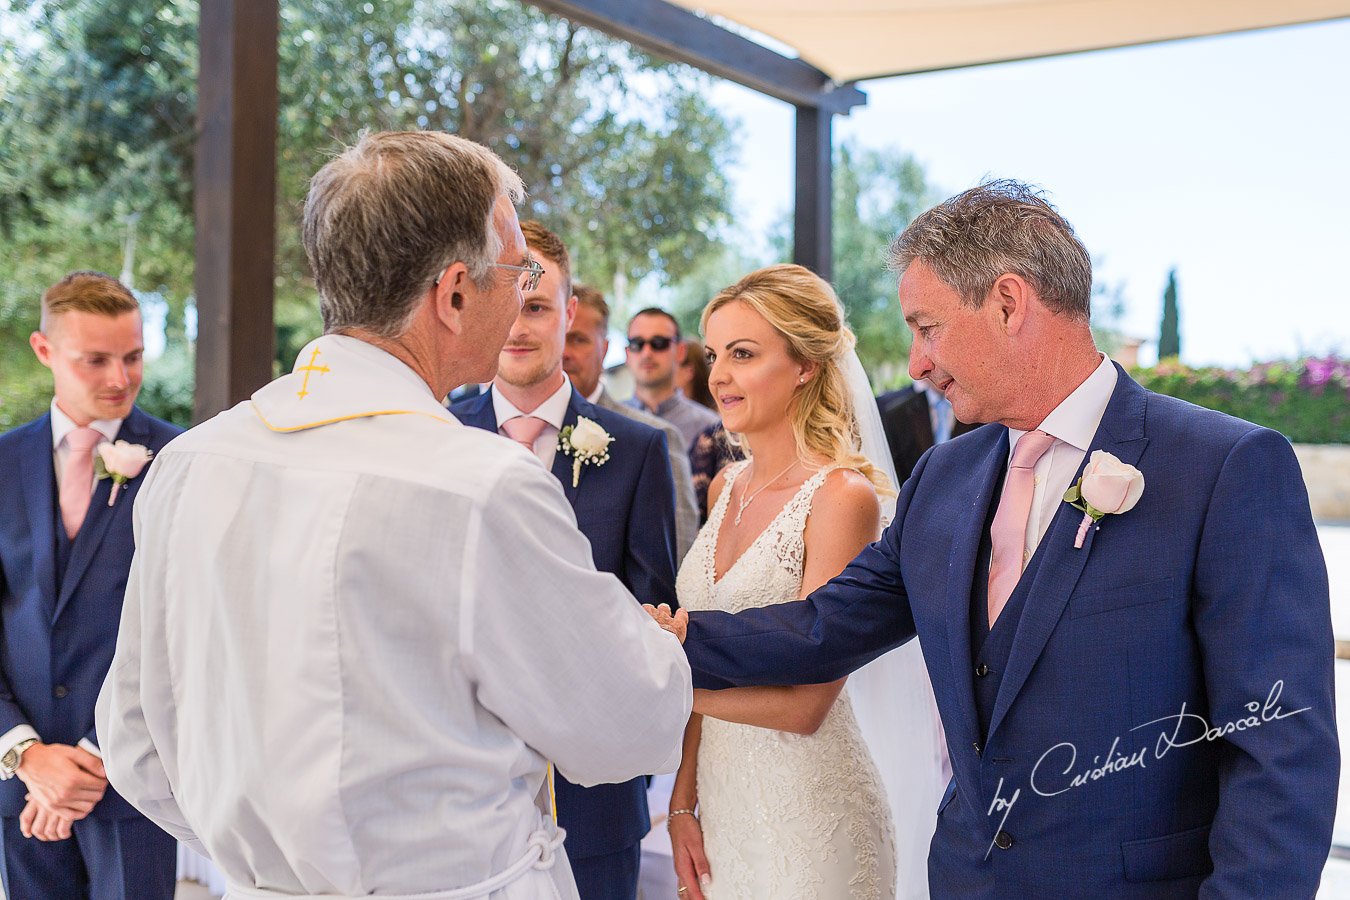 The father of the bride's reaction when the bride arrives at the wedding ceremony at Aphrodite Hills Resort in Cyprus, captured by photographer Cristian Dascalu.